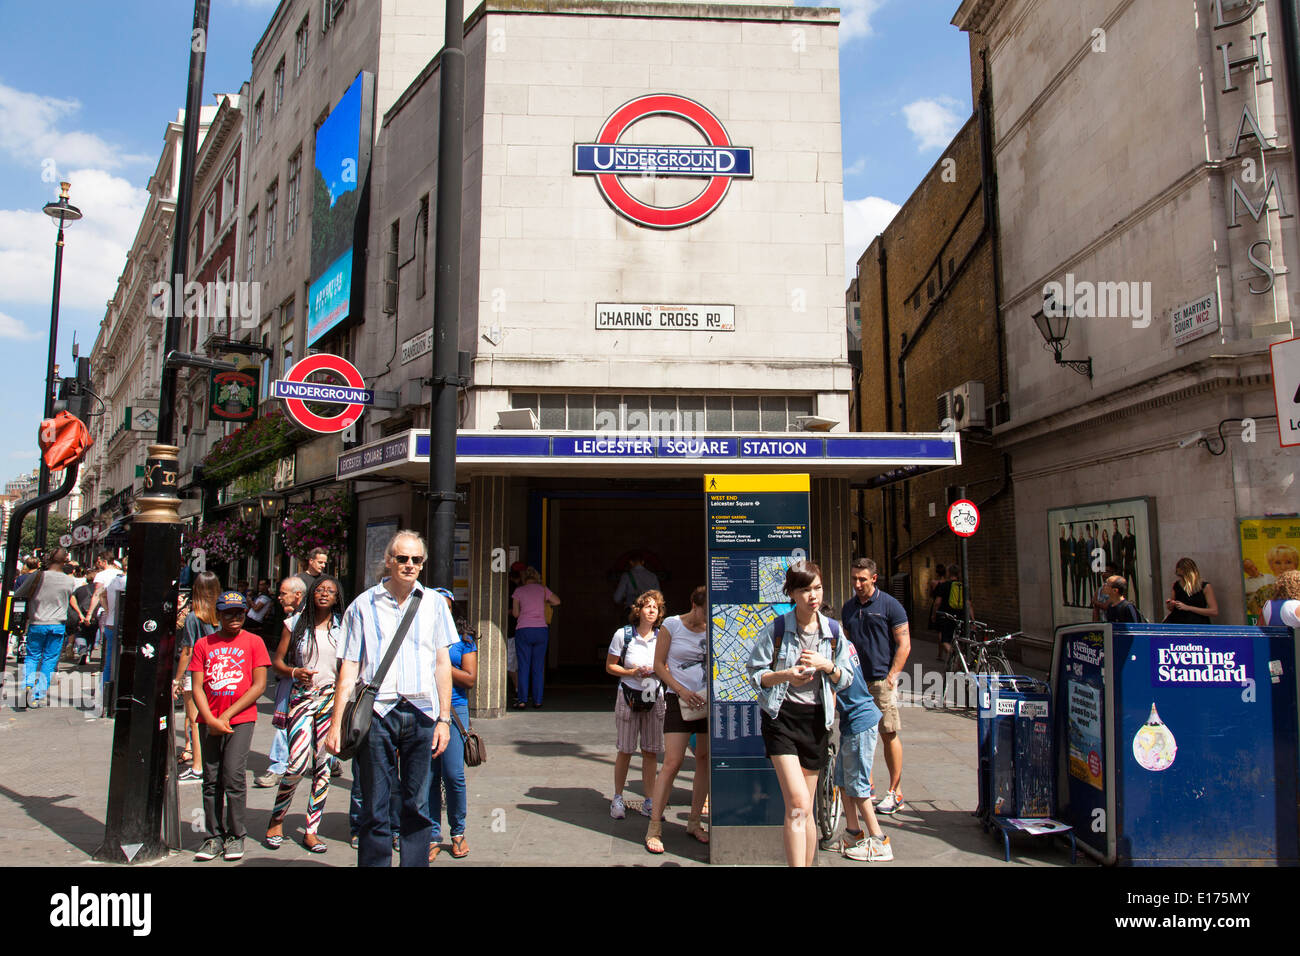 Leicester Square underground station, Charing Cross Road, London, England, U.K. - Stock Image